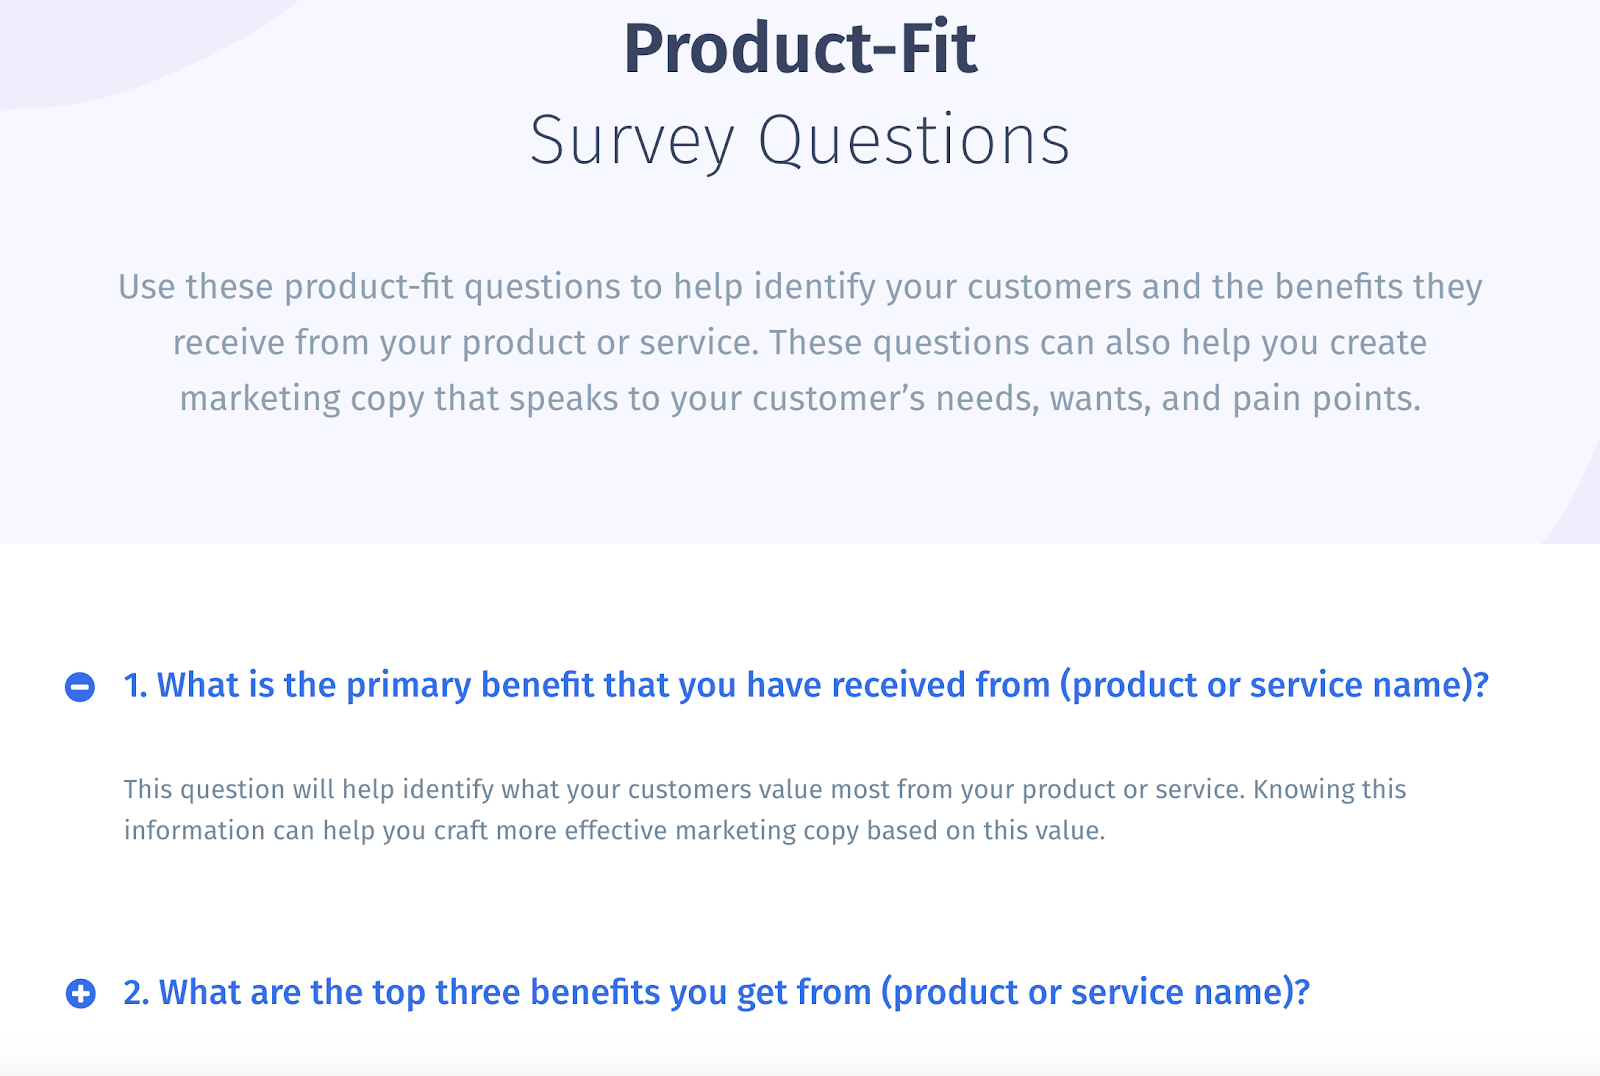 Product-Fit Survey Questions - Use these questions to identify your customers